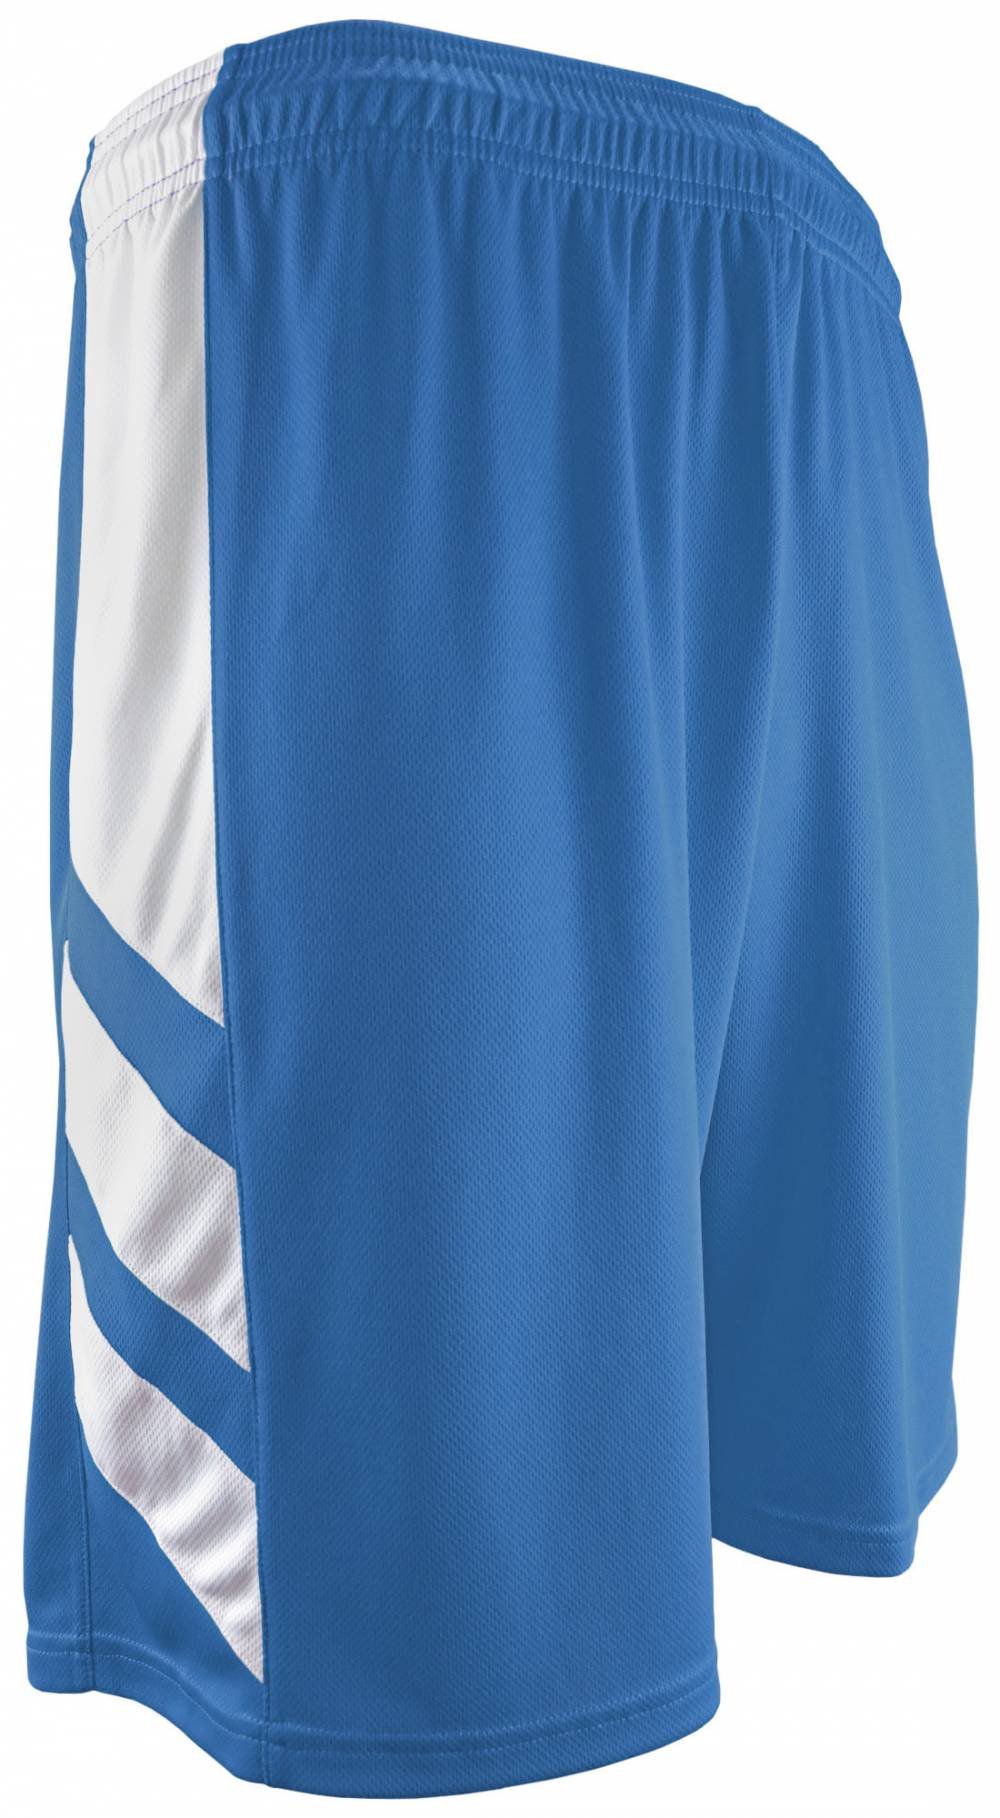 "Adult/Youth 7"" to 9"" Inseam Basketball Shorts"